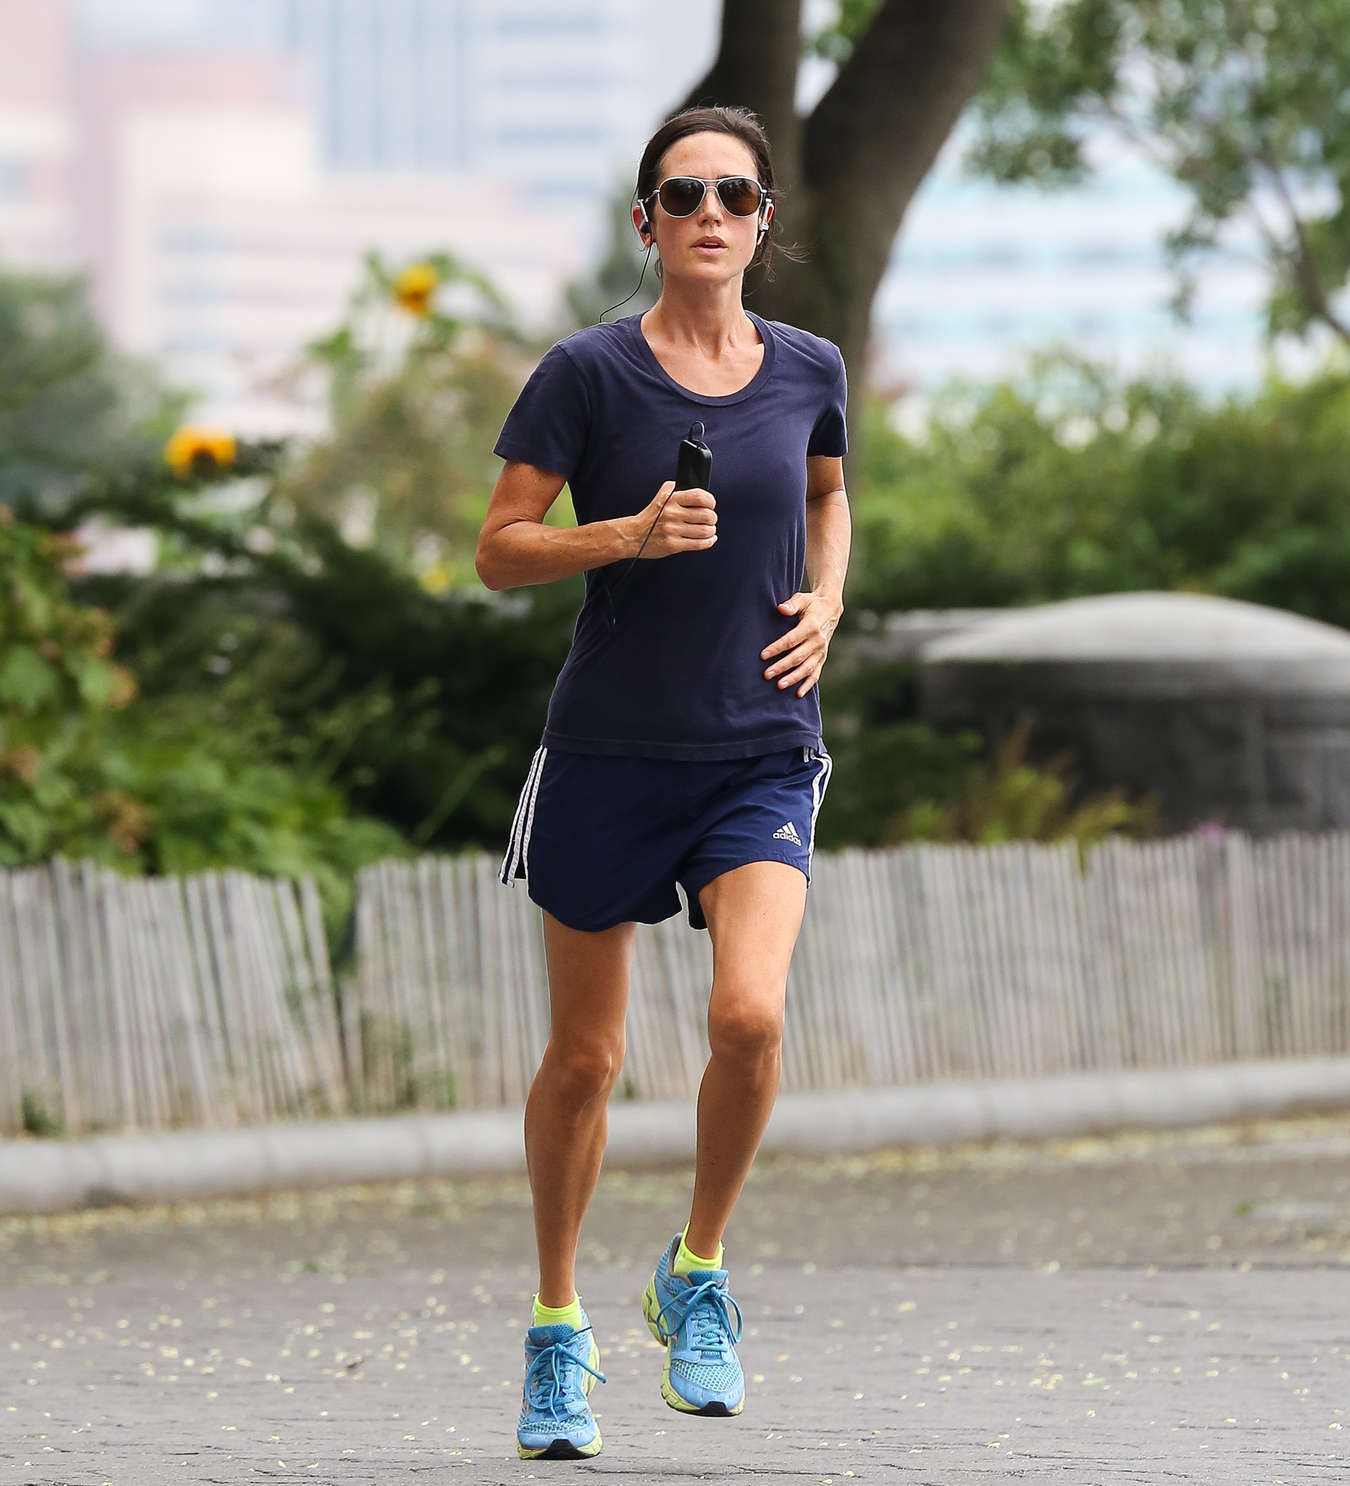 Jennifer-Connelly---jogging-in-New-York-